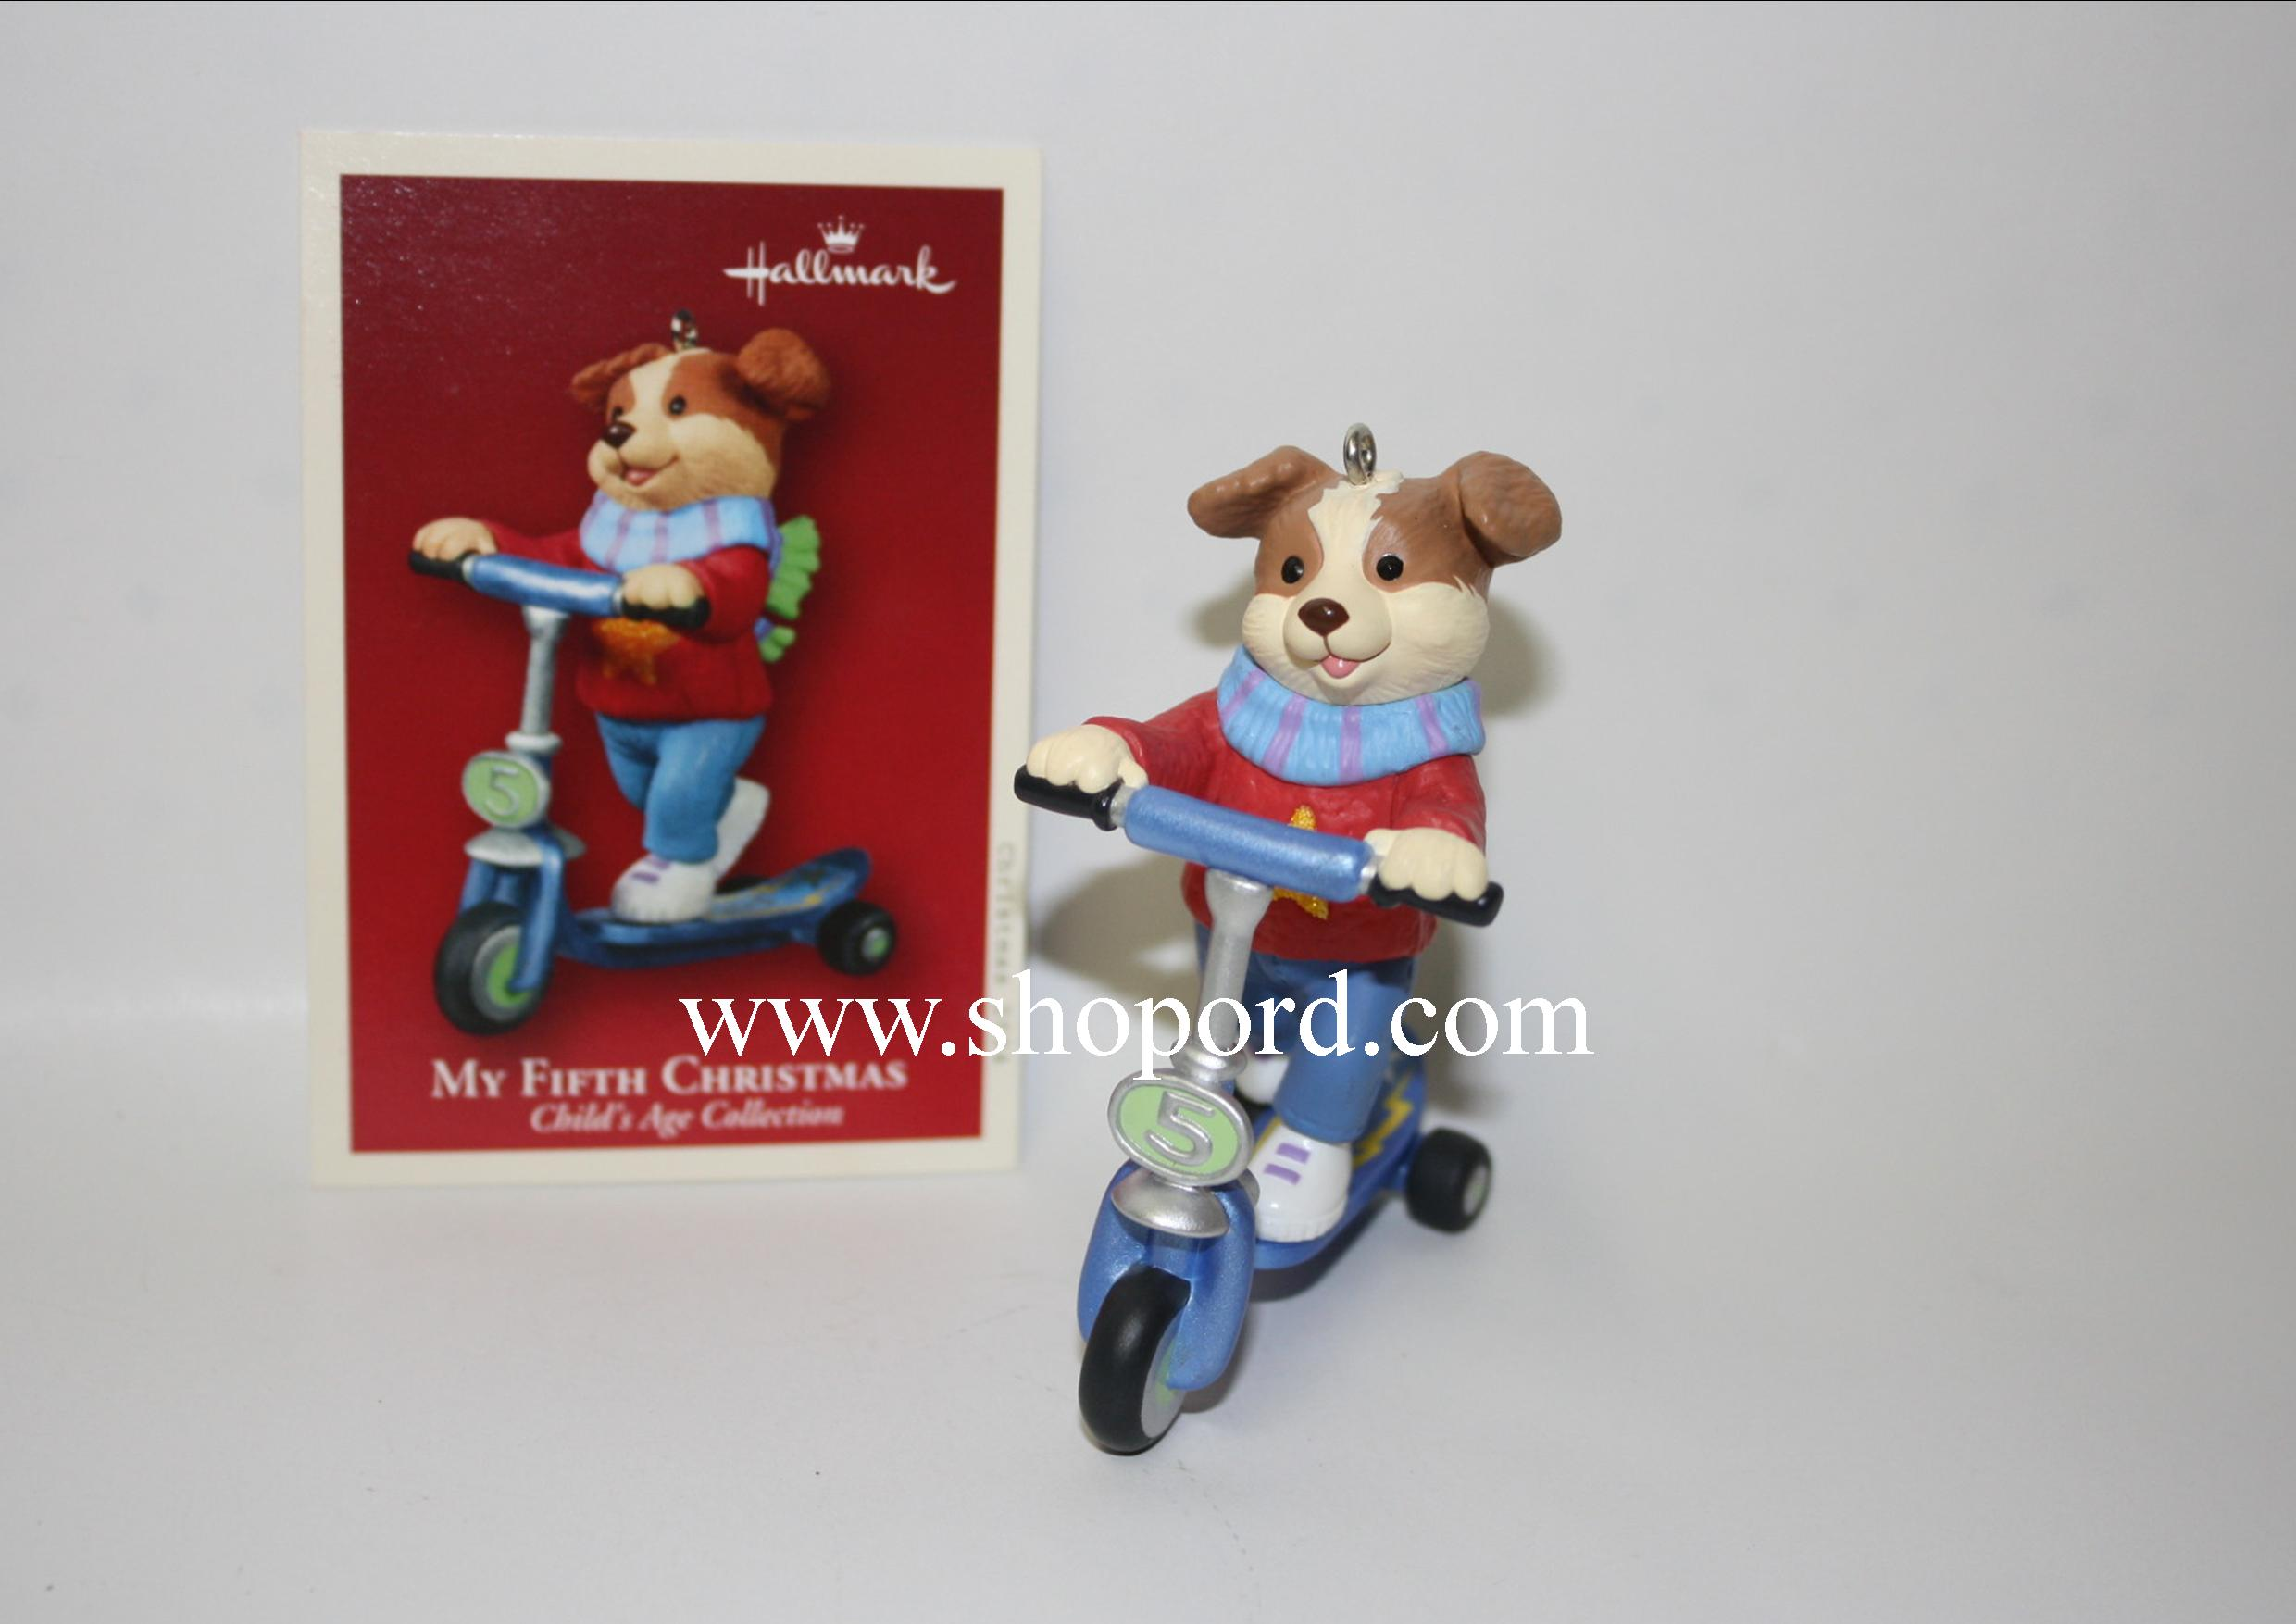 Hallmark 2004 My Fifth Christmas Childs Age Collection Boy Ornament QXG5701